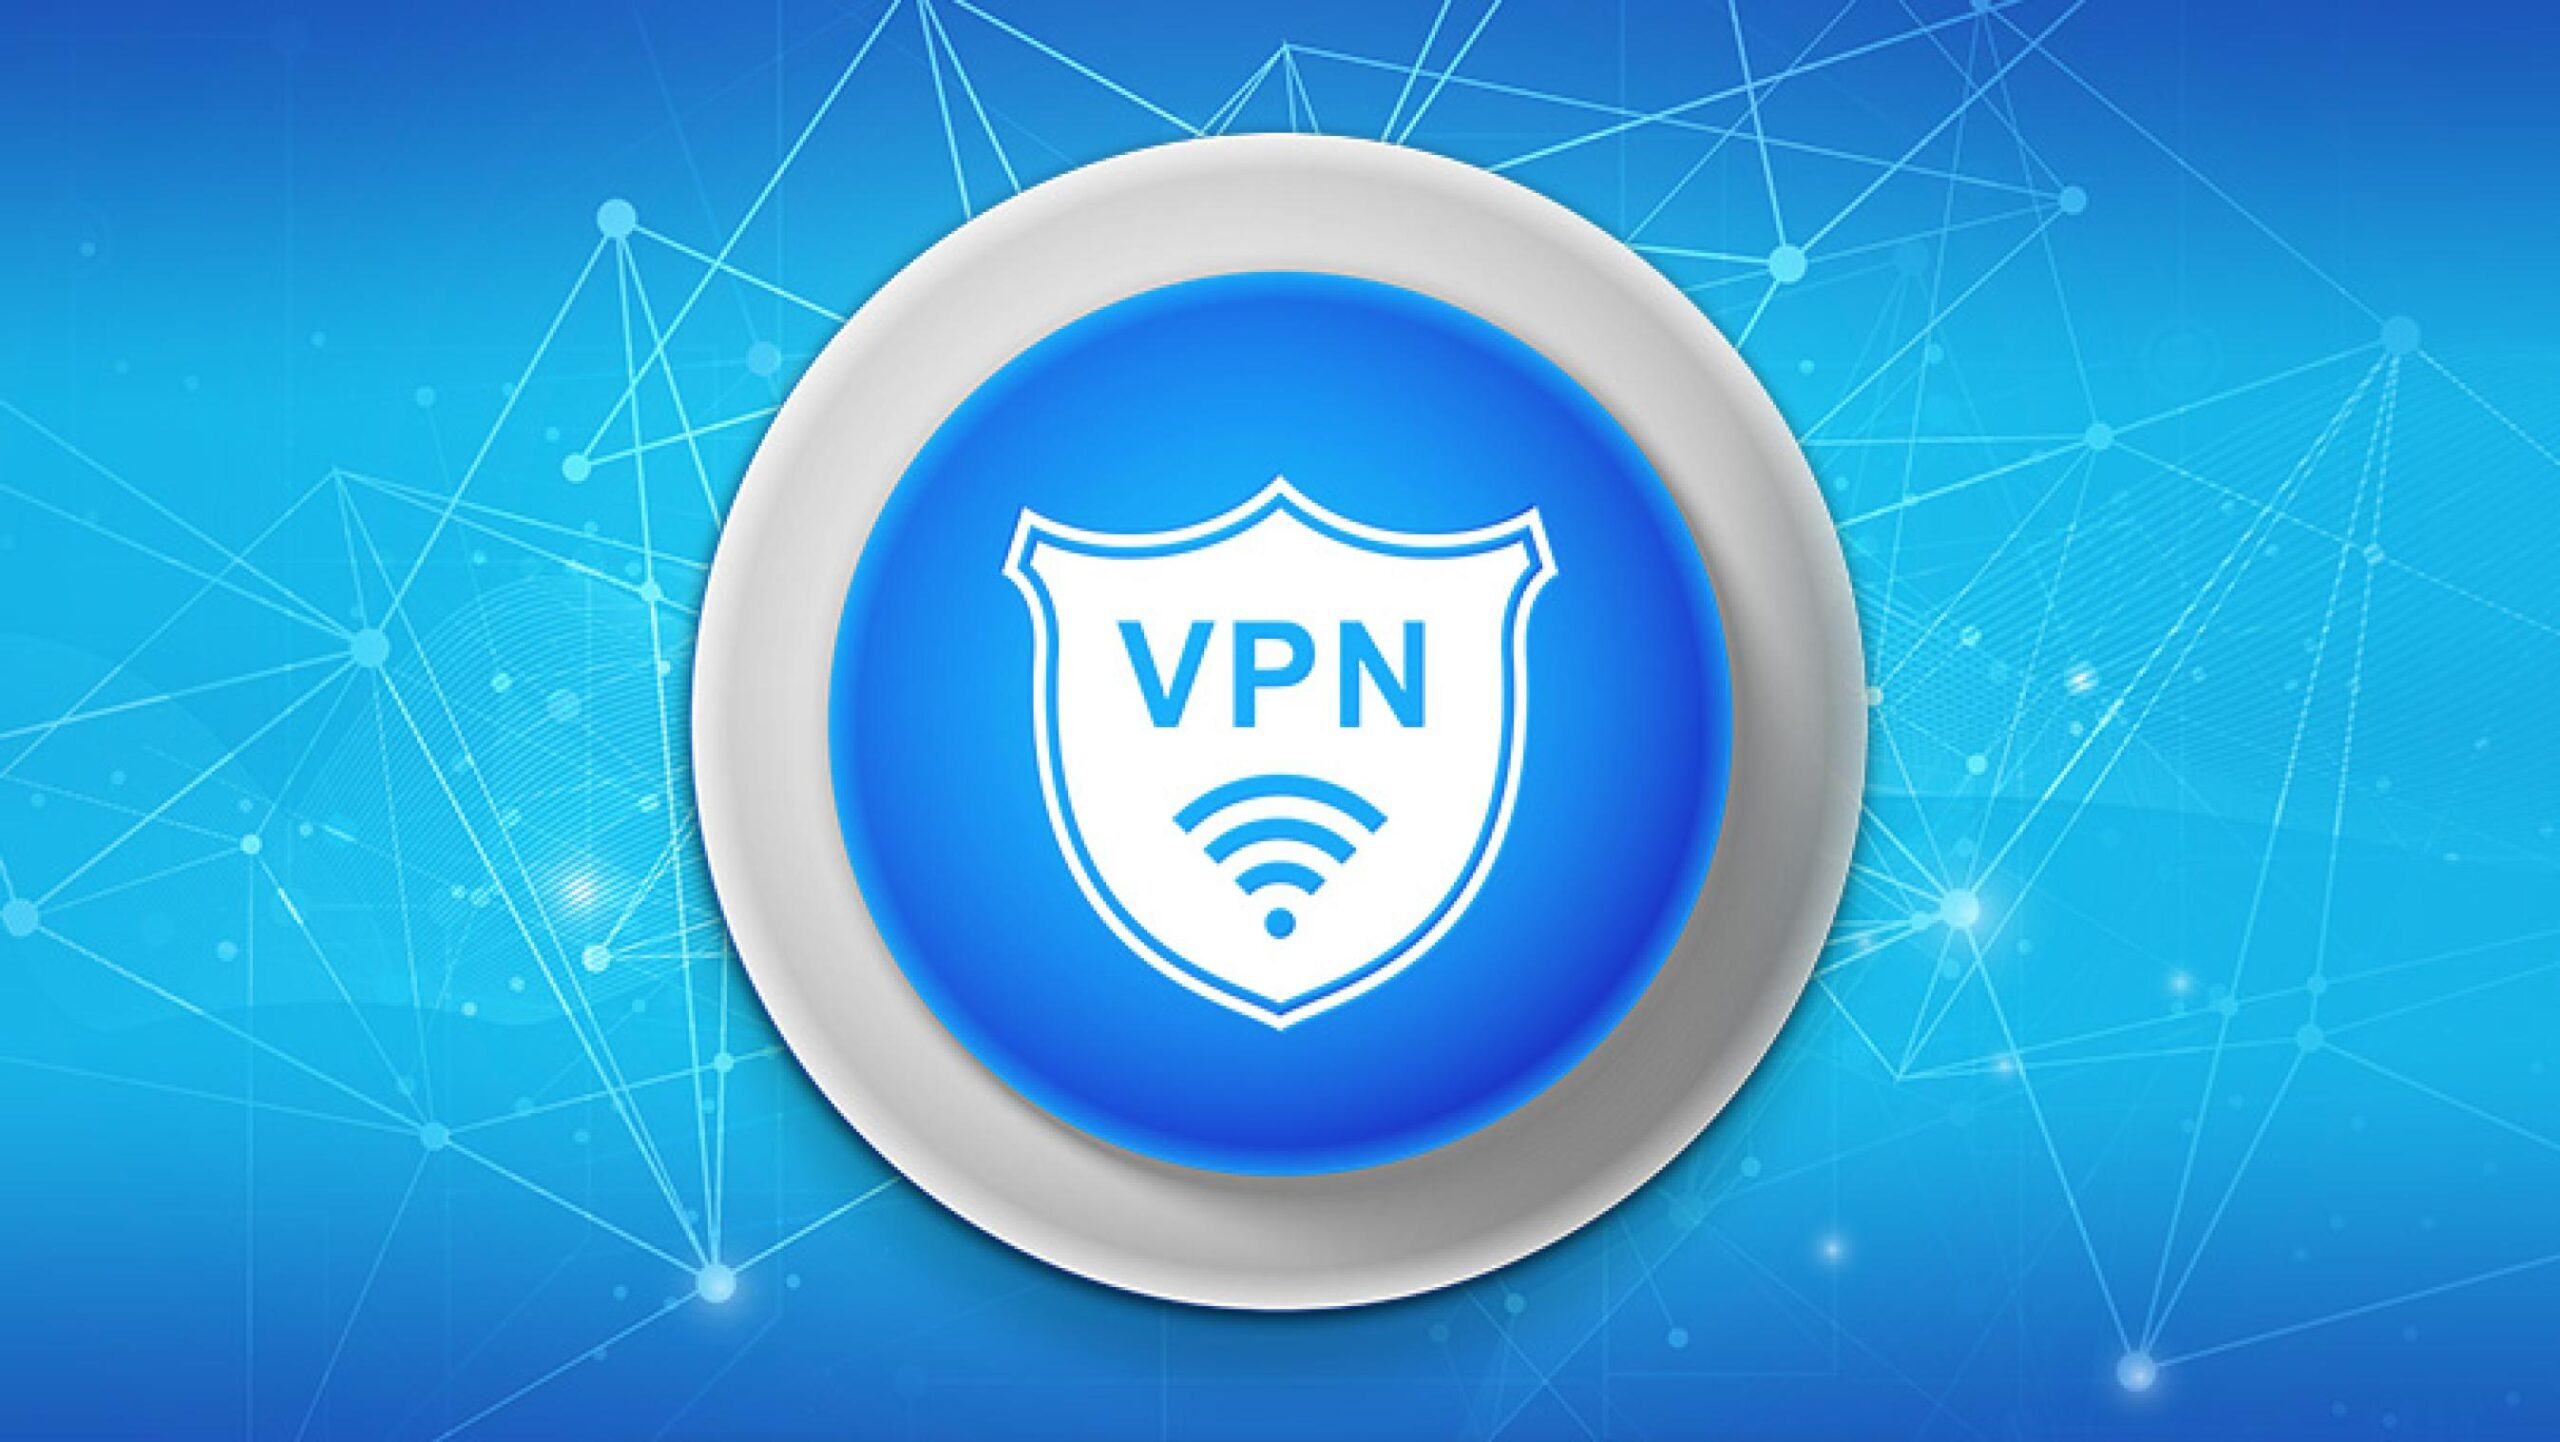 VPN software and apps